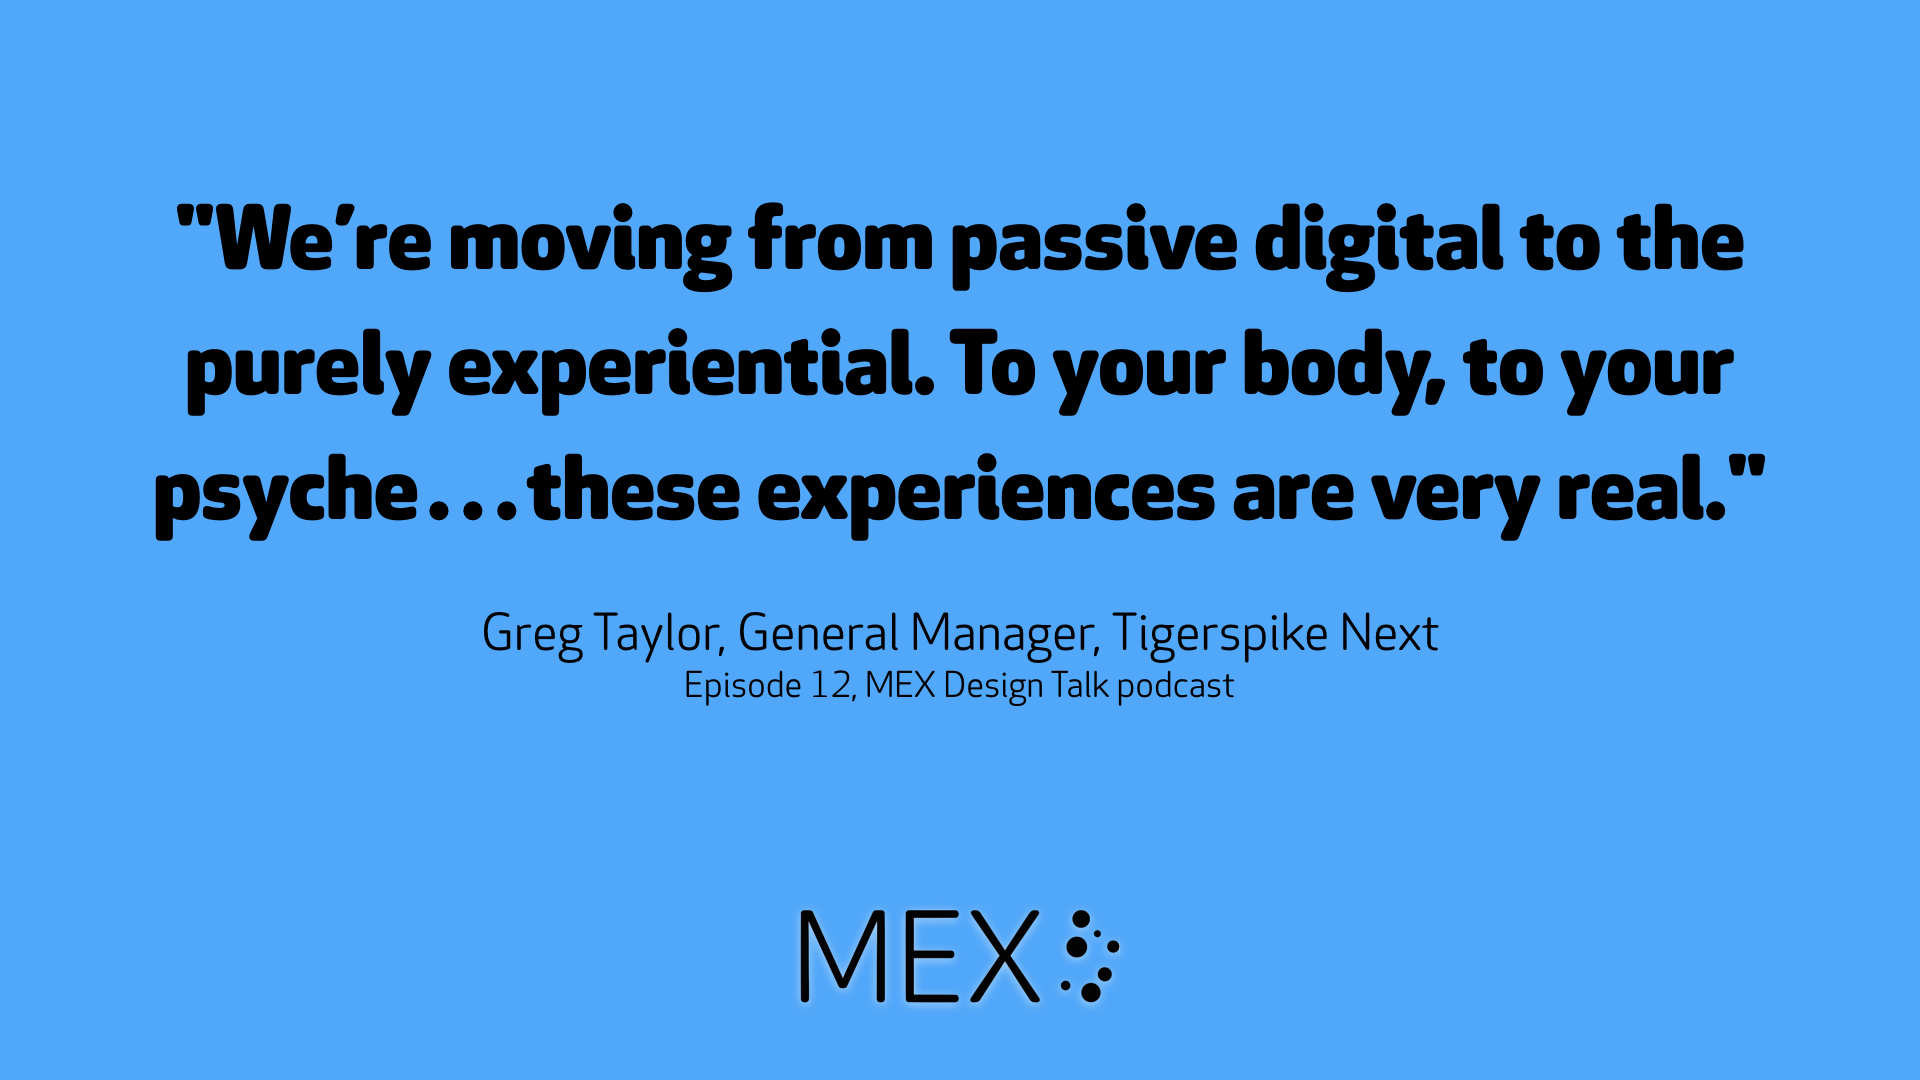 We're moving from passive digital to the purely experiential. To your body, to your psyche…these experiences are very real -- Greg Taylor, General Manager, Tigerspike Next on the MEX Design Talk podcast